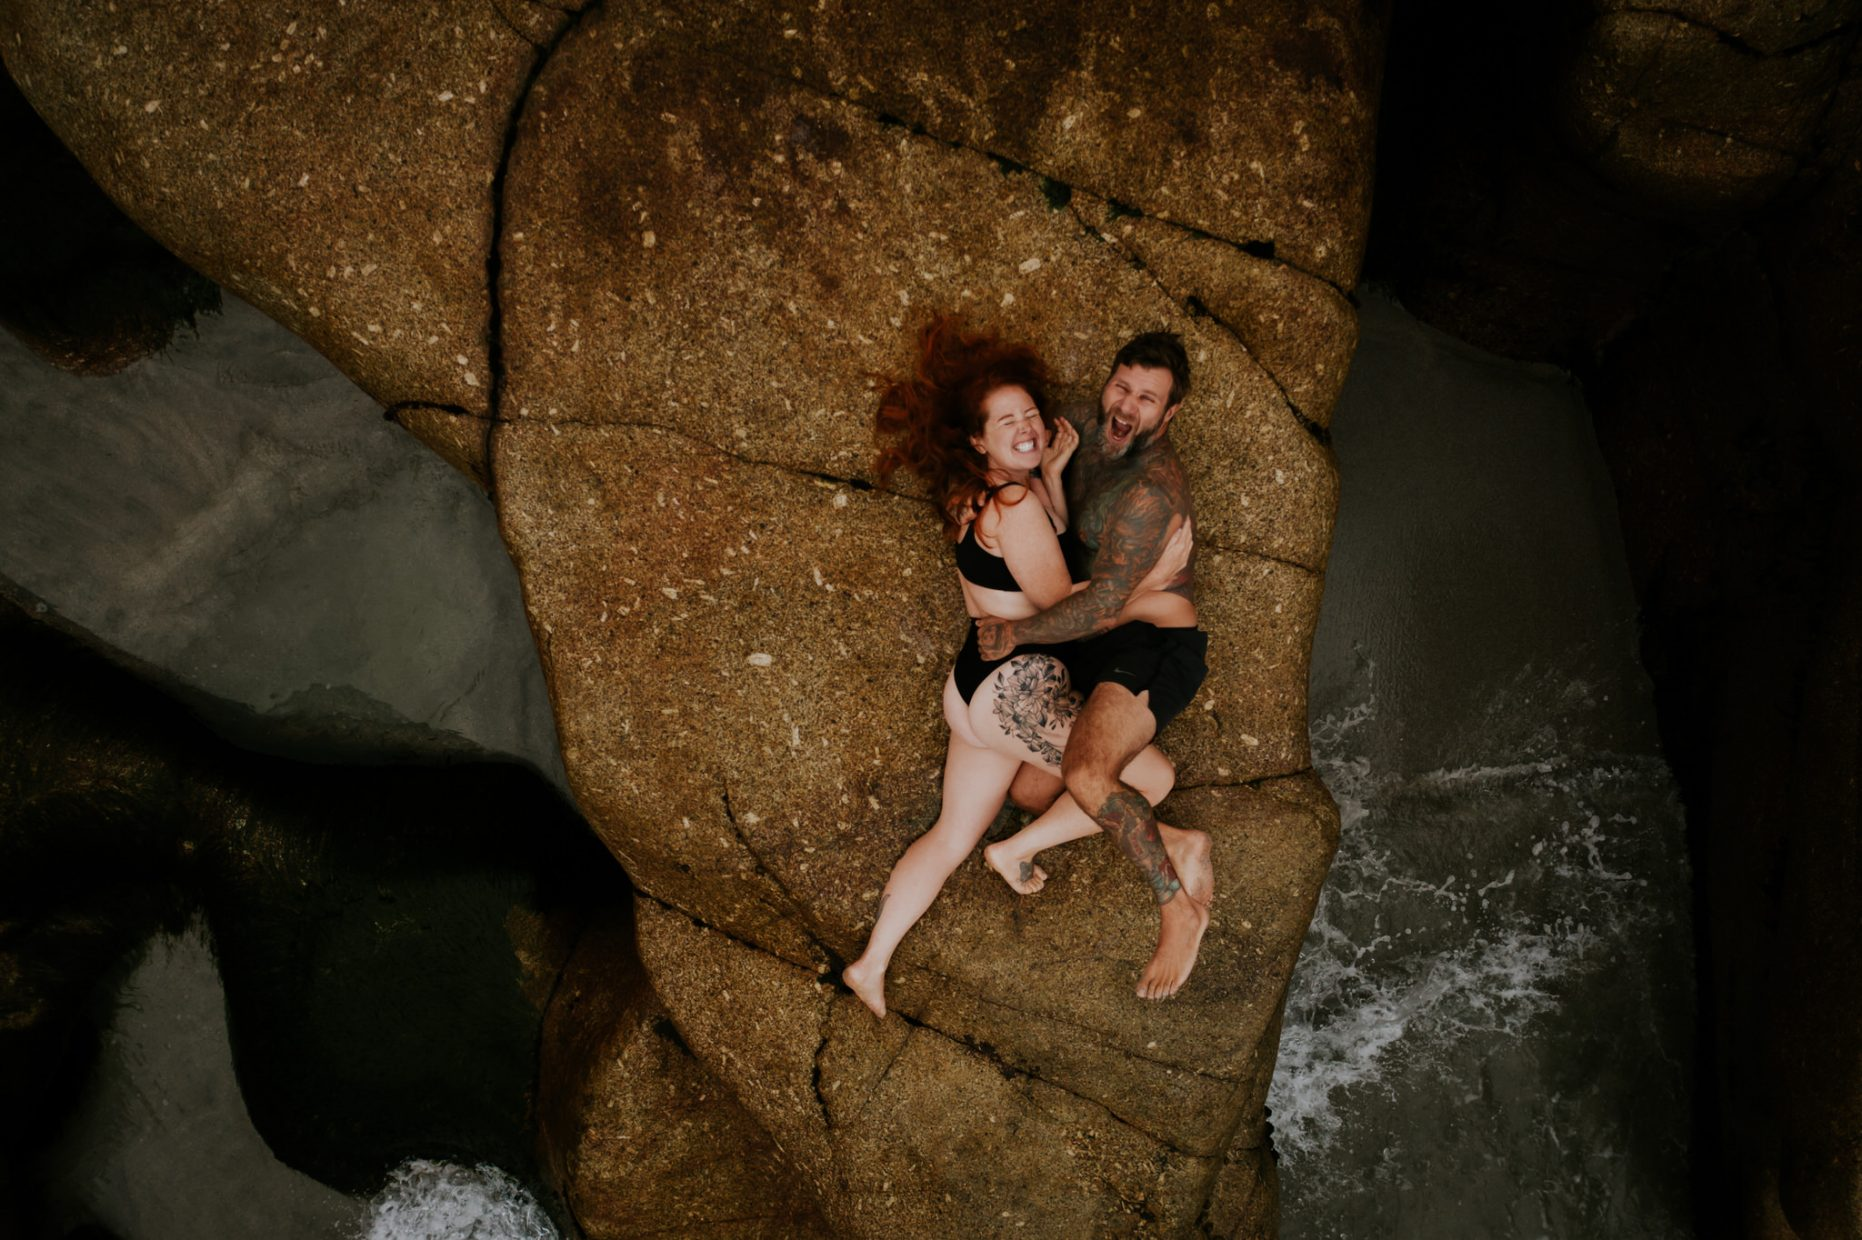 A drone image from above of a couple cuddling closely on the rocks as the waves crash around